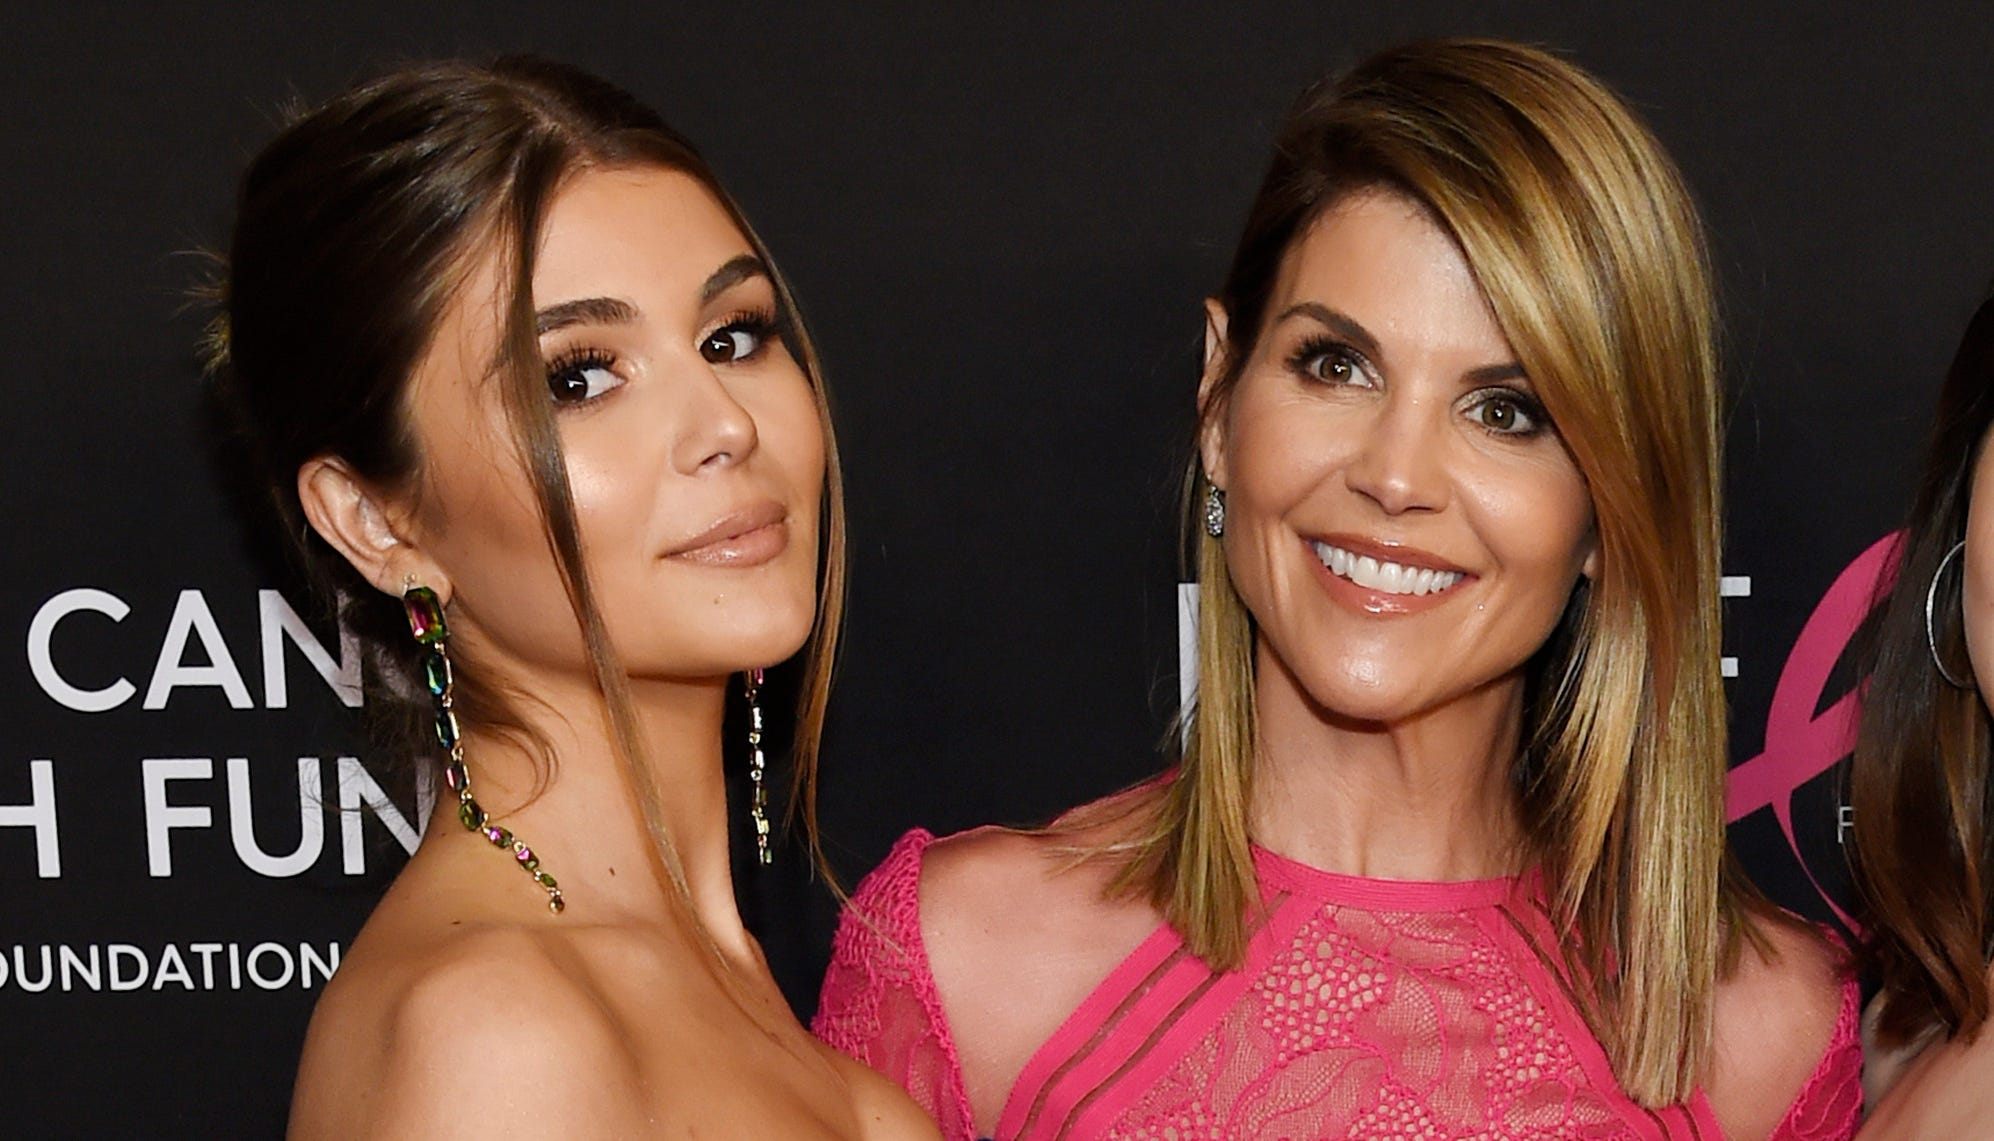 Lori Loughlin poses with her daughter Olivia Jade Giannulli.